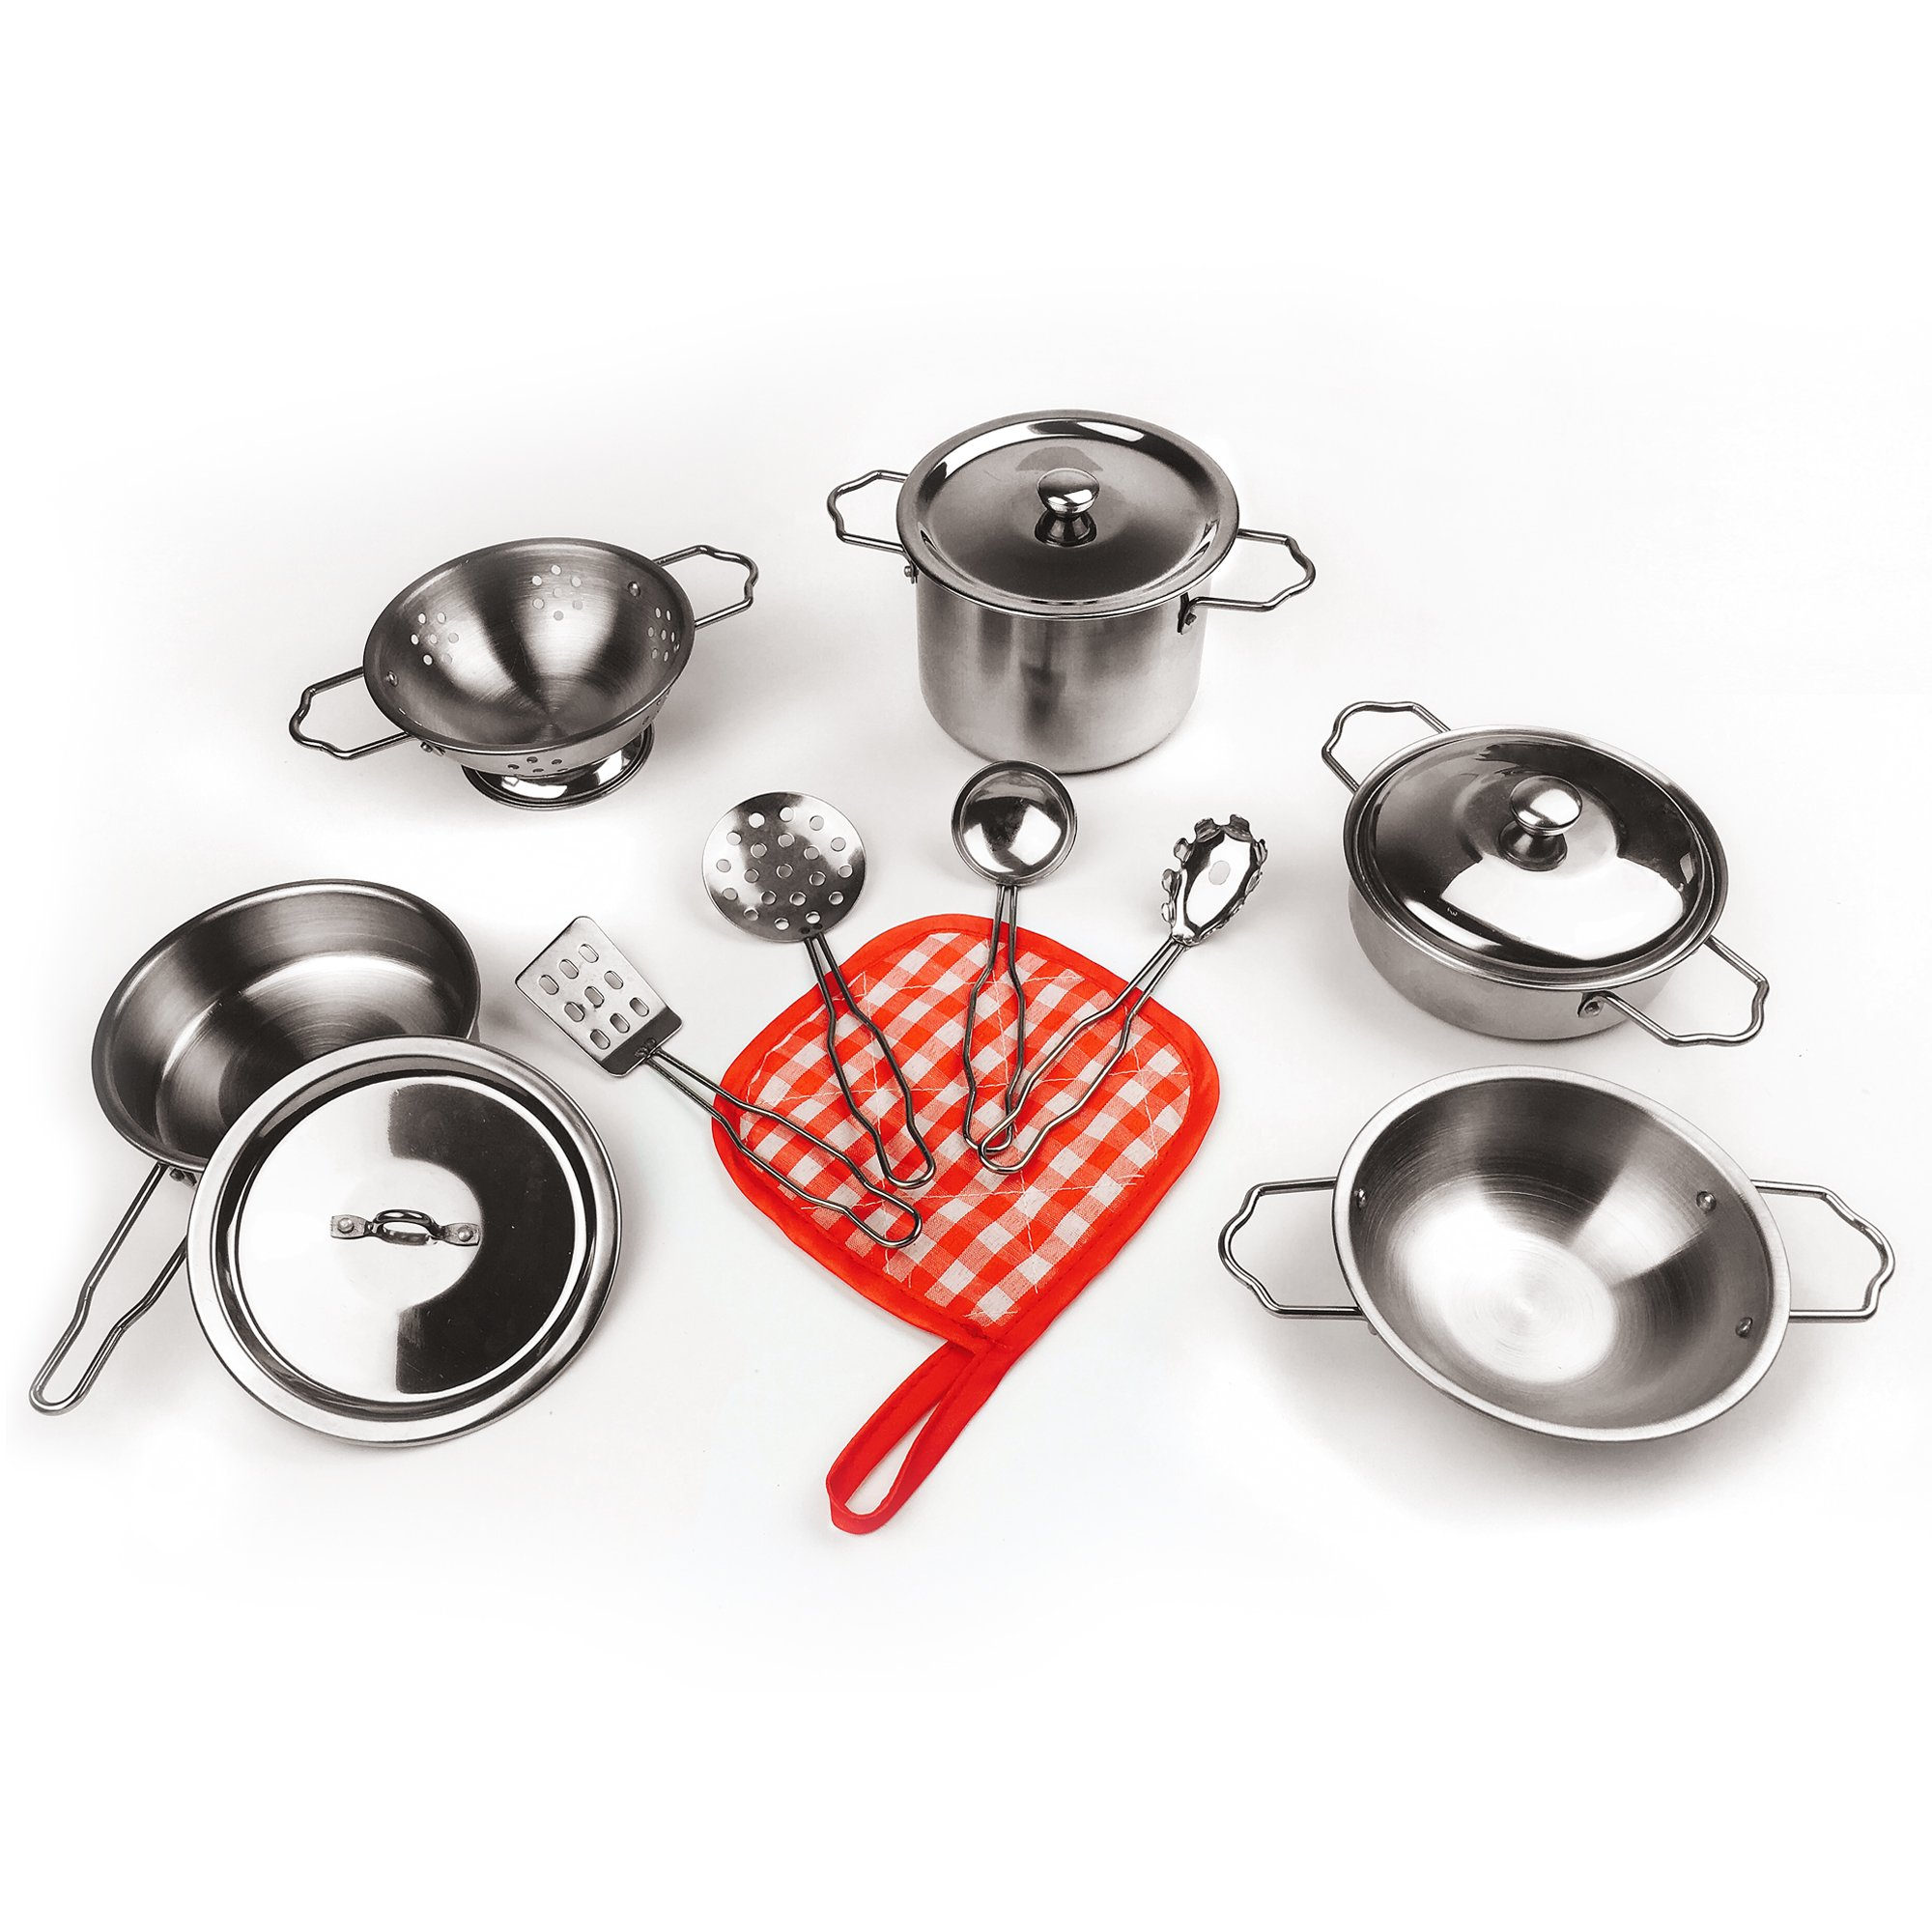 KIDAMI 13 Pieces Kitchen Pretend Toys, Stainless Steel Cookware Playset, Varieties of Pots Pans & Cooking Utensils for Kids (fit Little Baby Tiny Hand) (Original) by KIDAMI